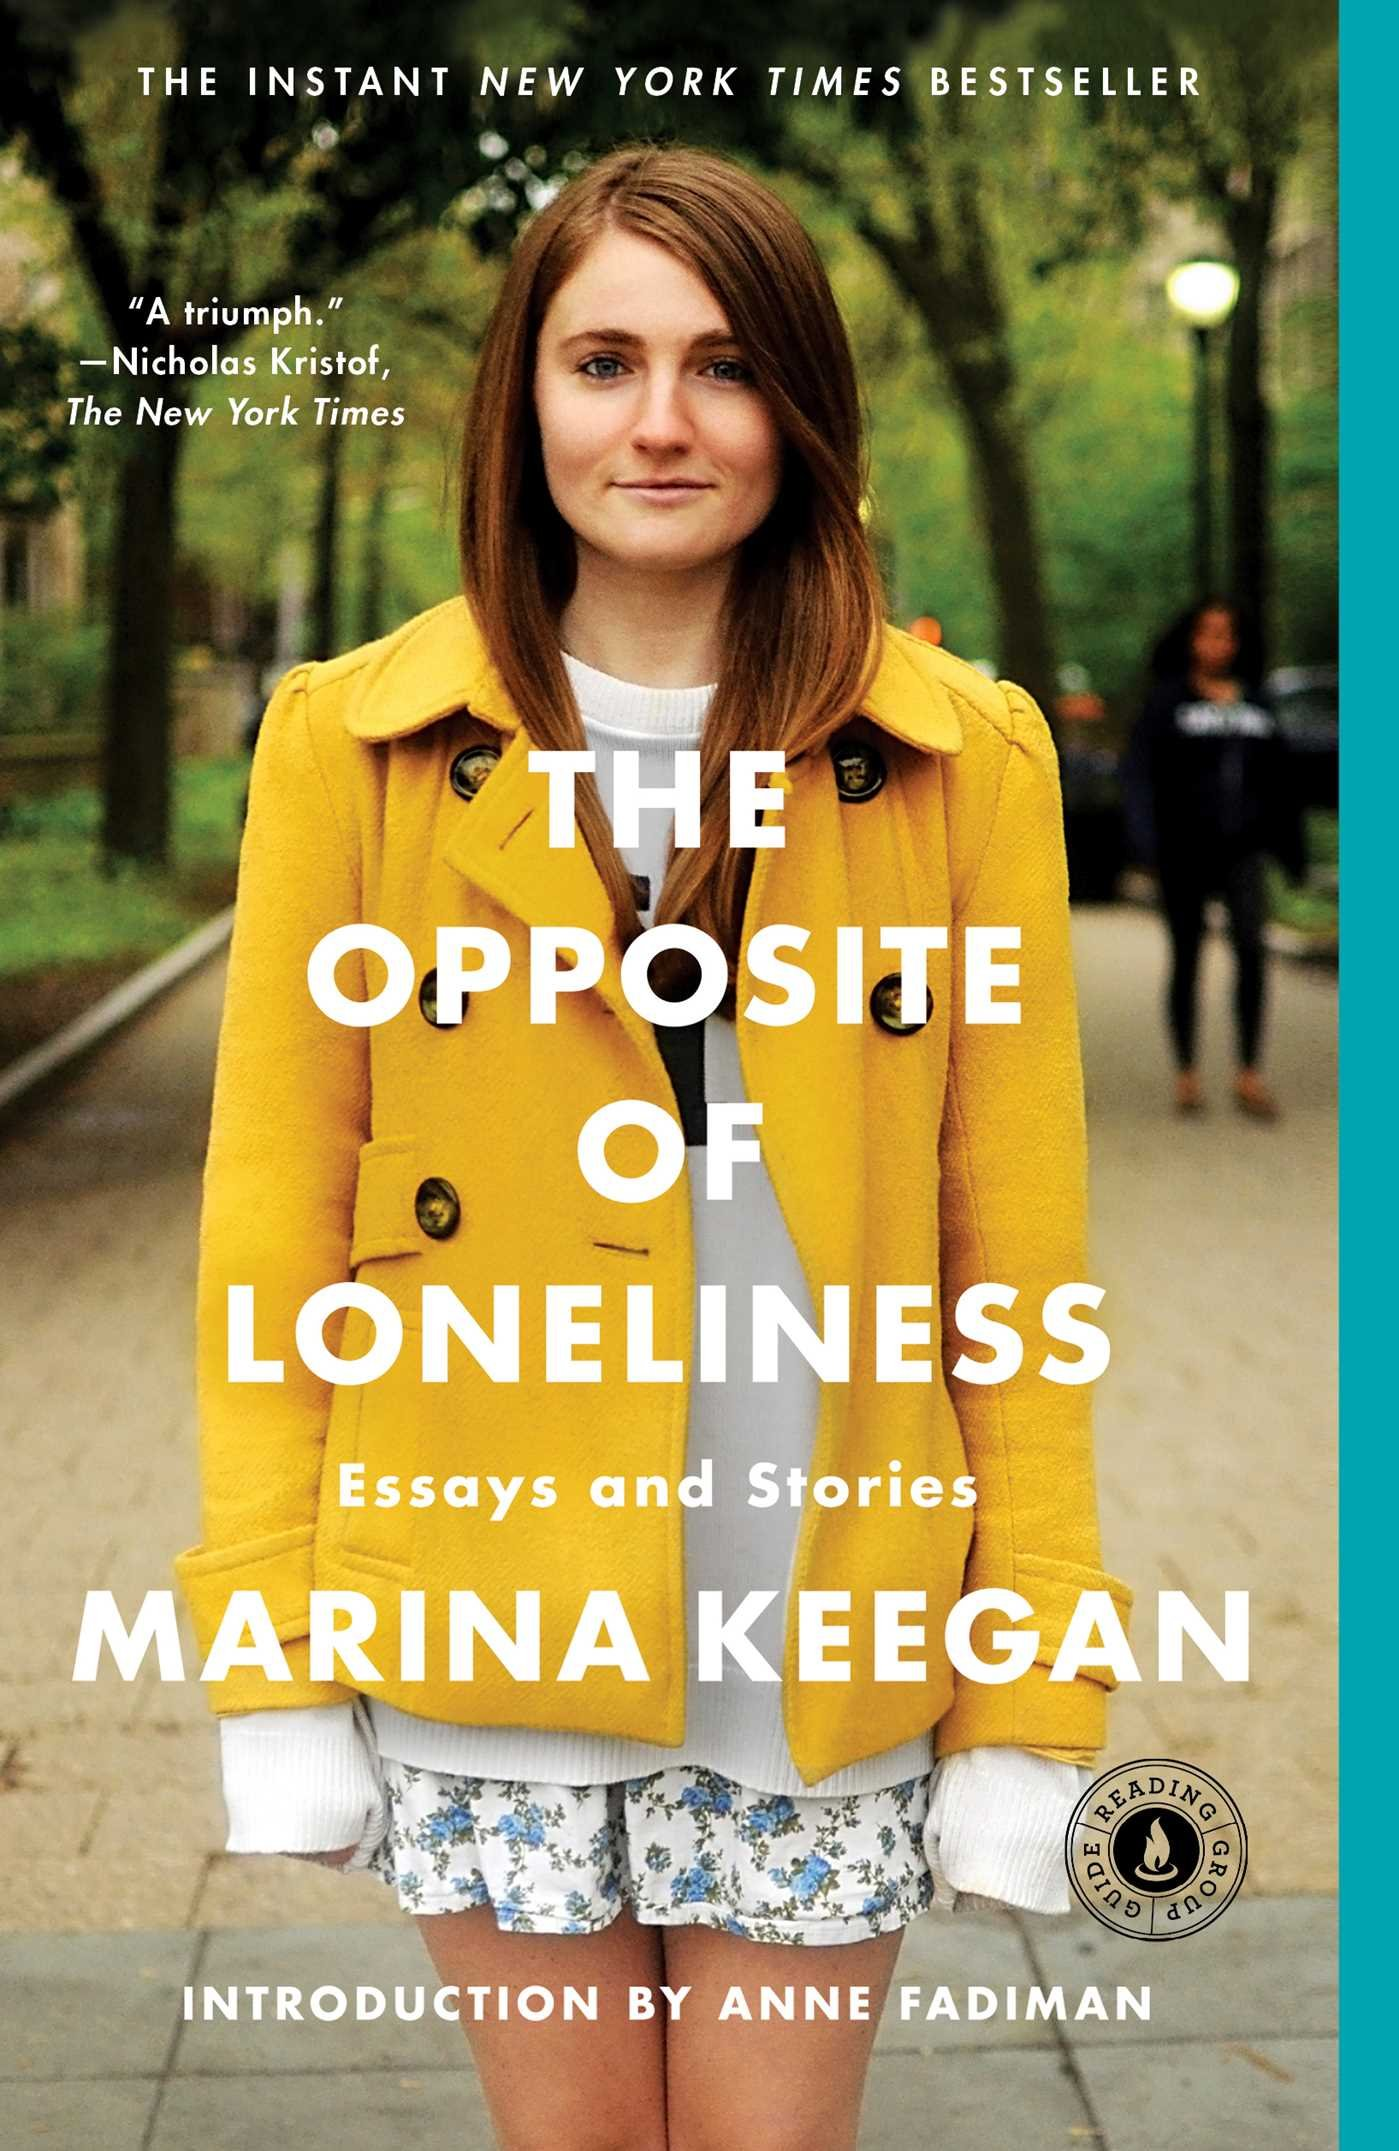 002 81xm Clxskl The Opposite Of Loneliness Essay Fascinating Book Essays And Stories Full